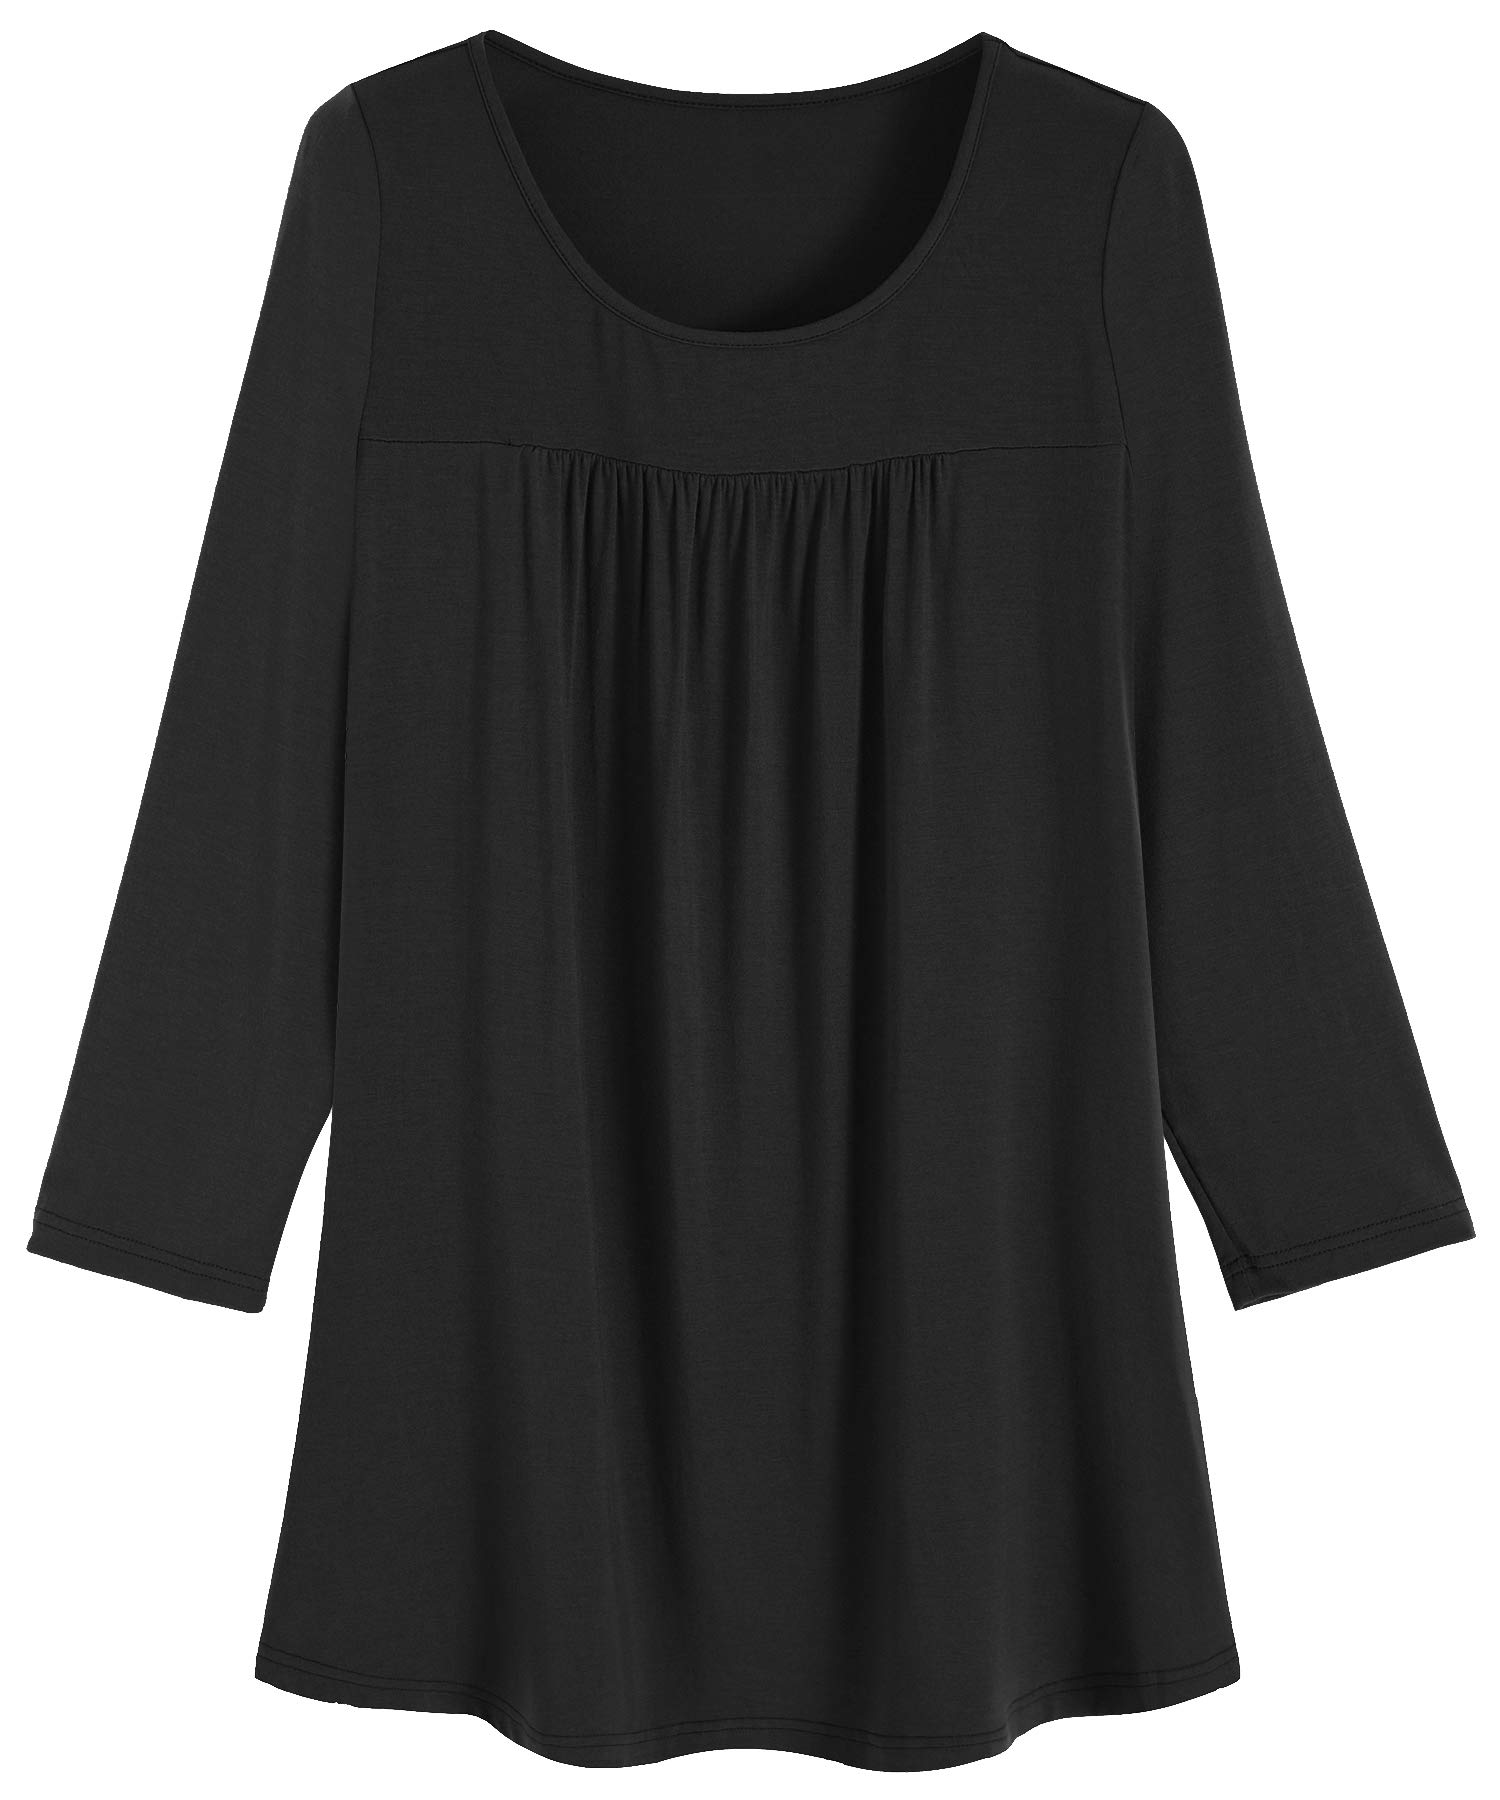 Weintee Women's 3/4 Sleeves Pleated Tunic Top